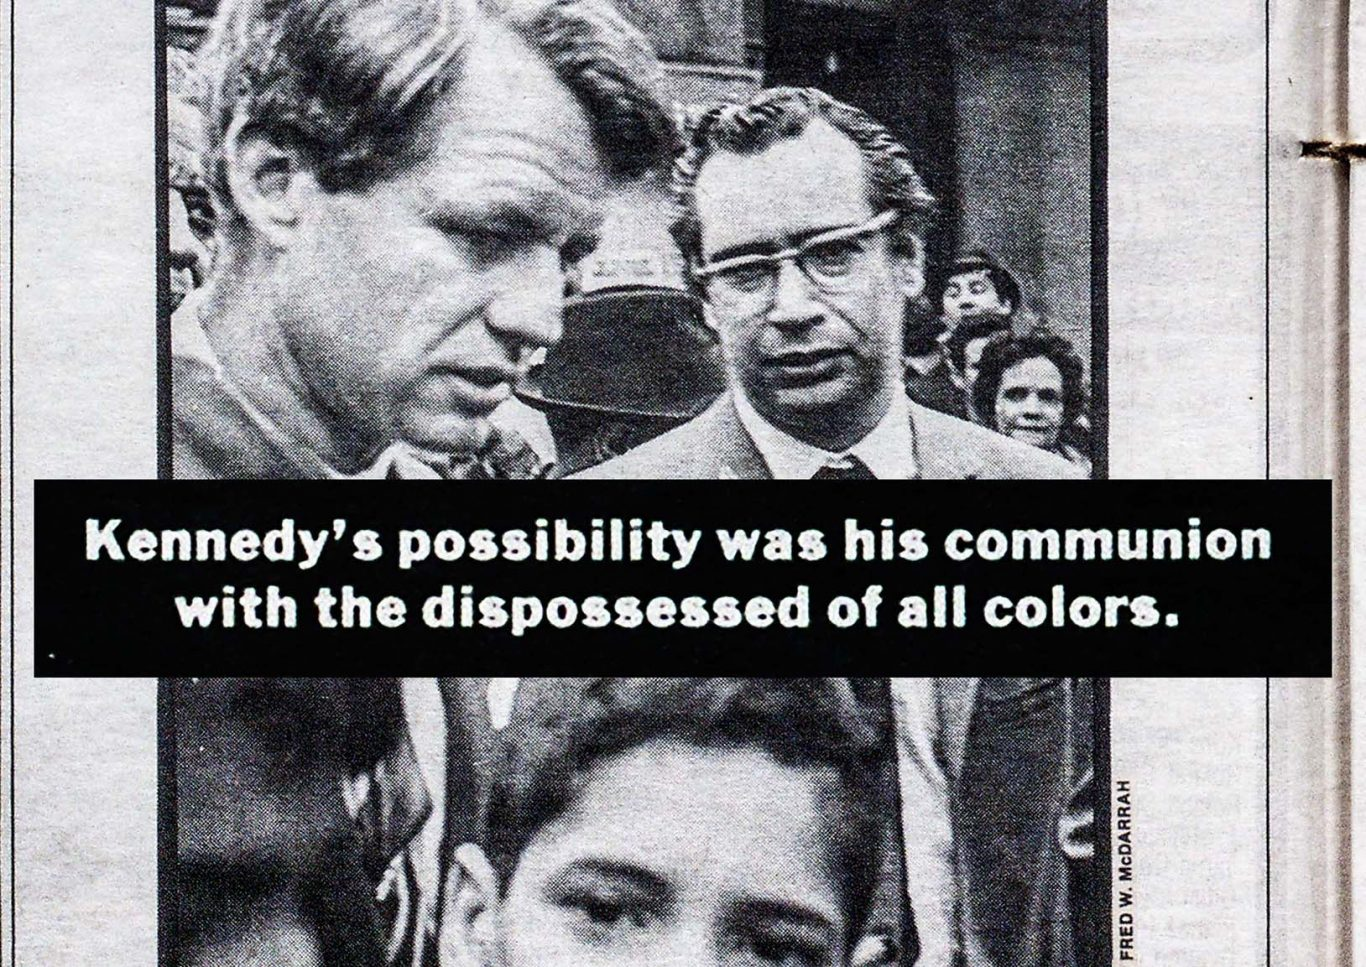 1988 Village Voice article by Jack Newfield about how history changed in 1968 when Robert Kennedy was assassinated